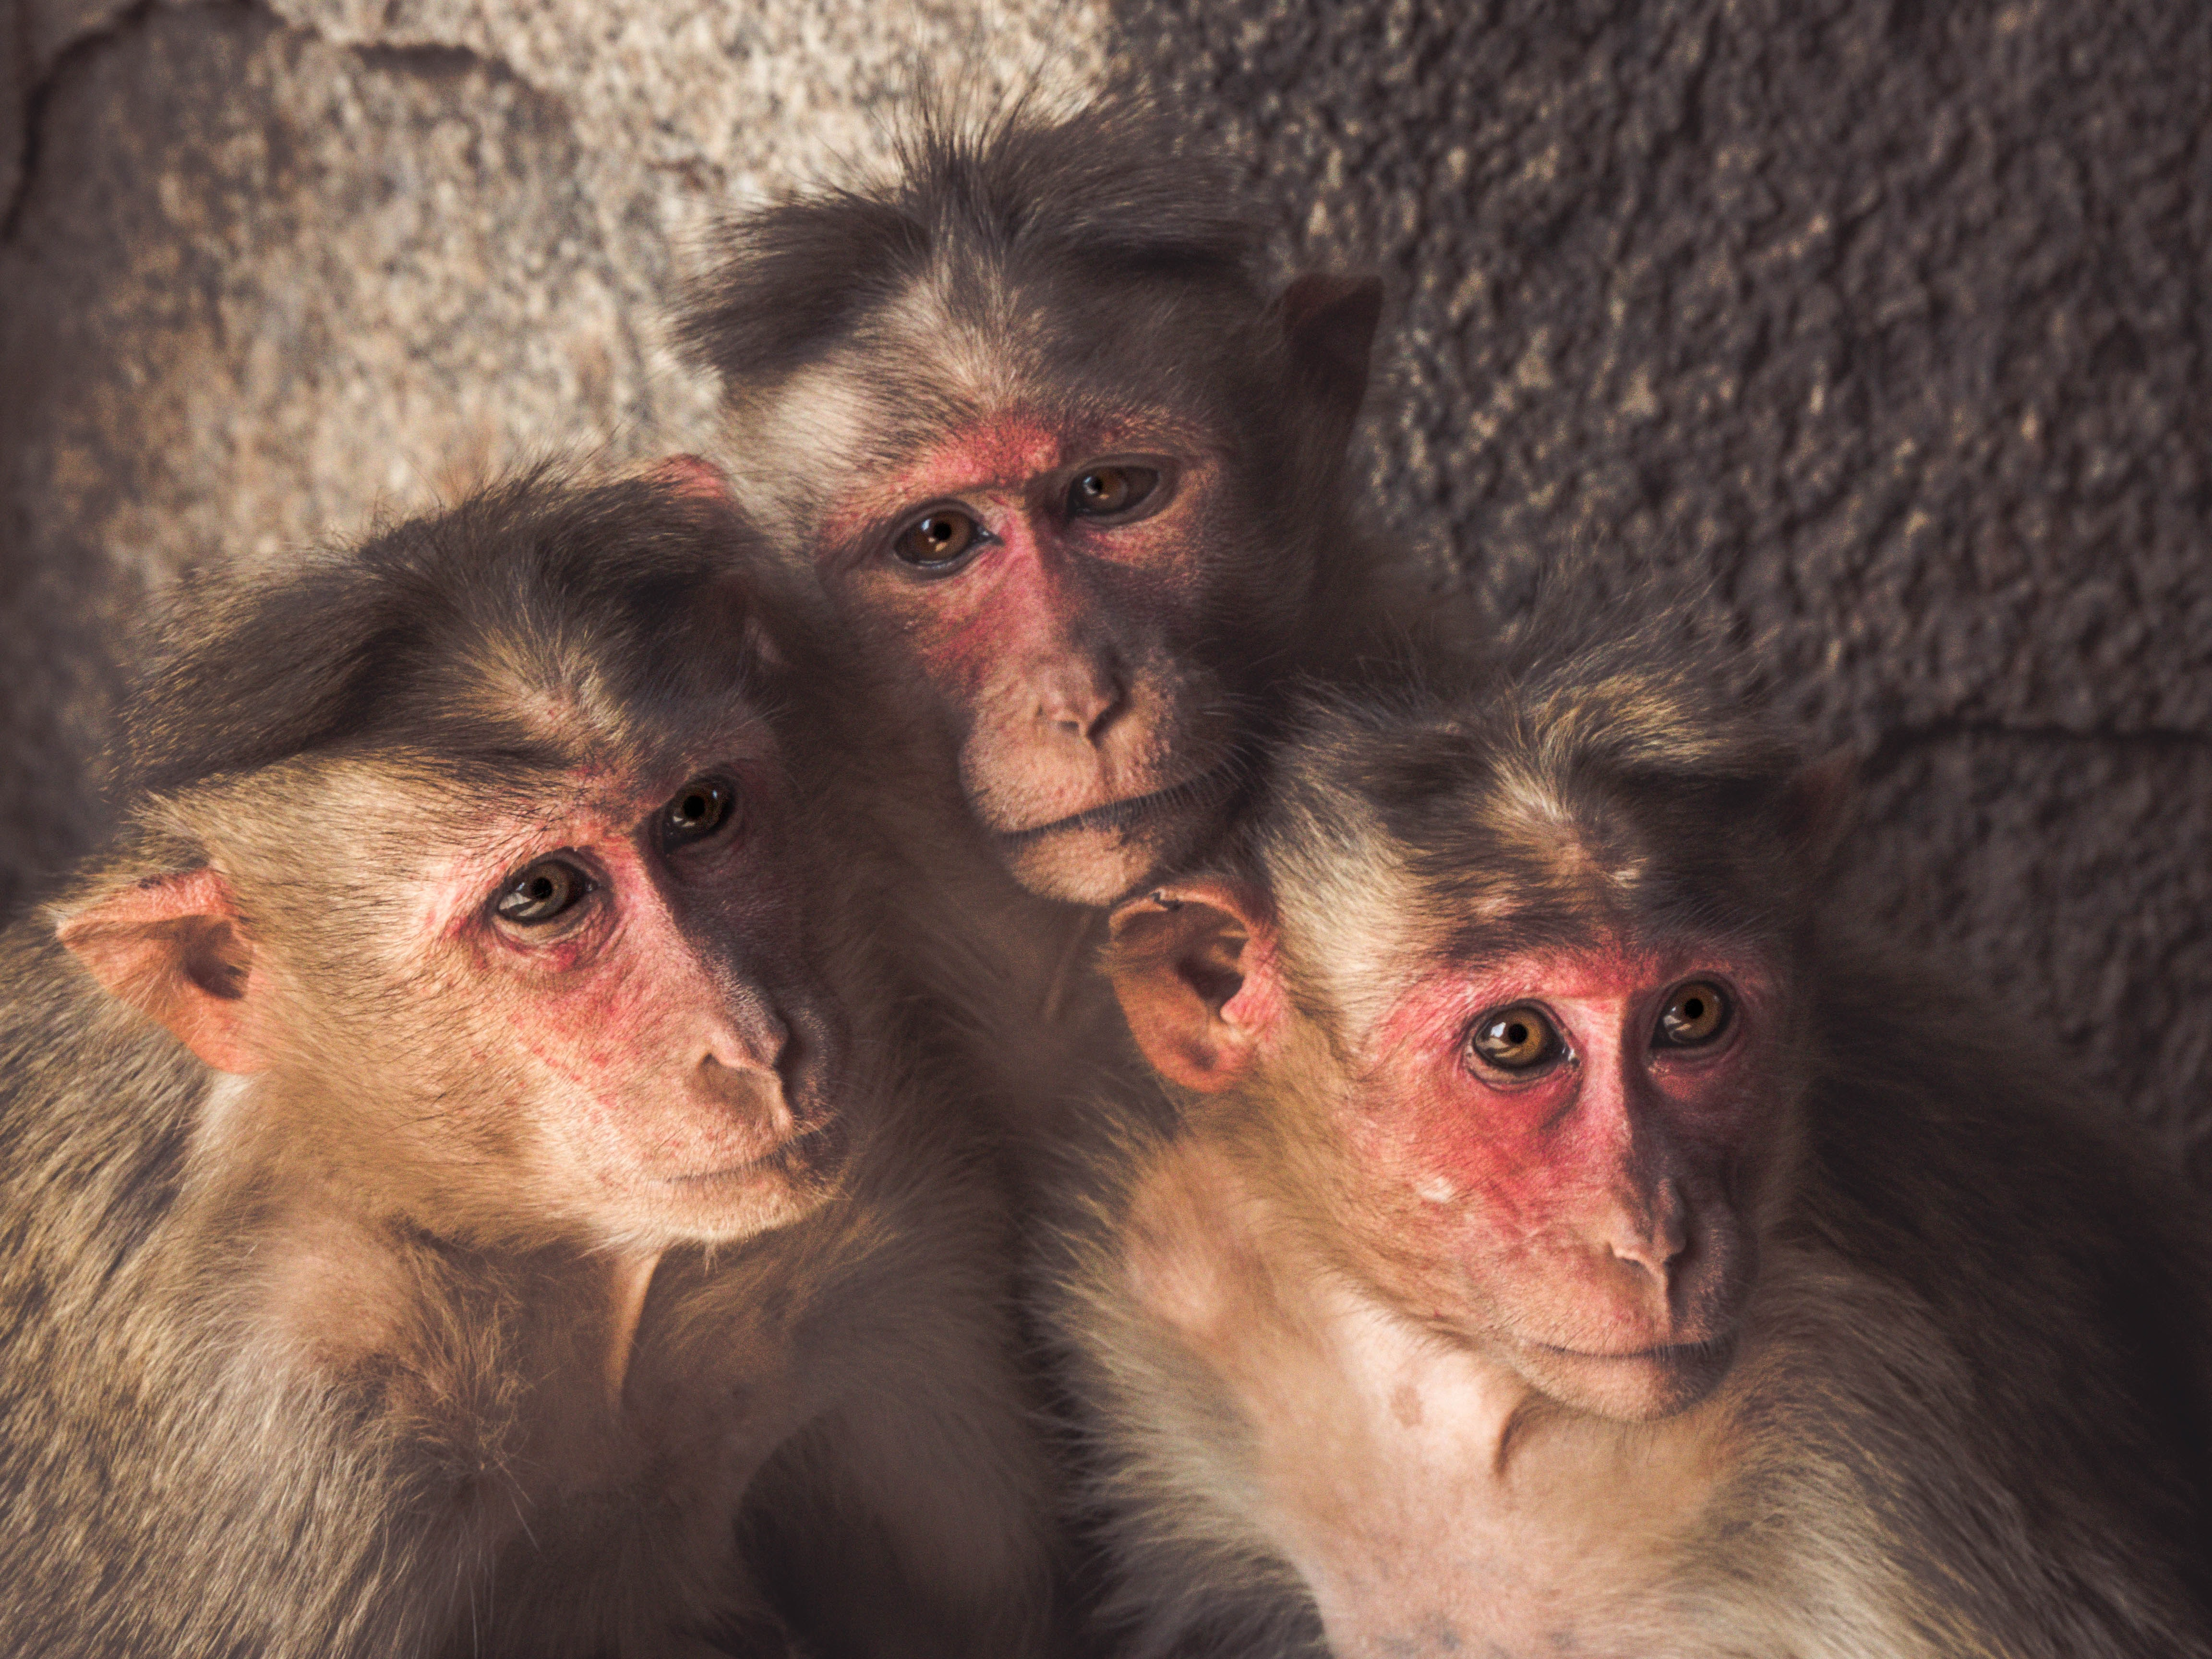 three monkeys standing near wall